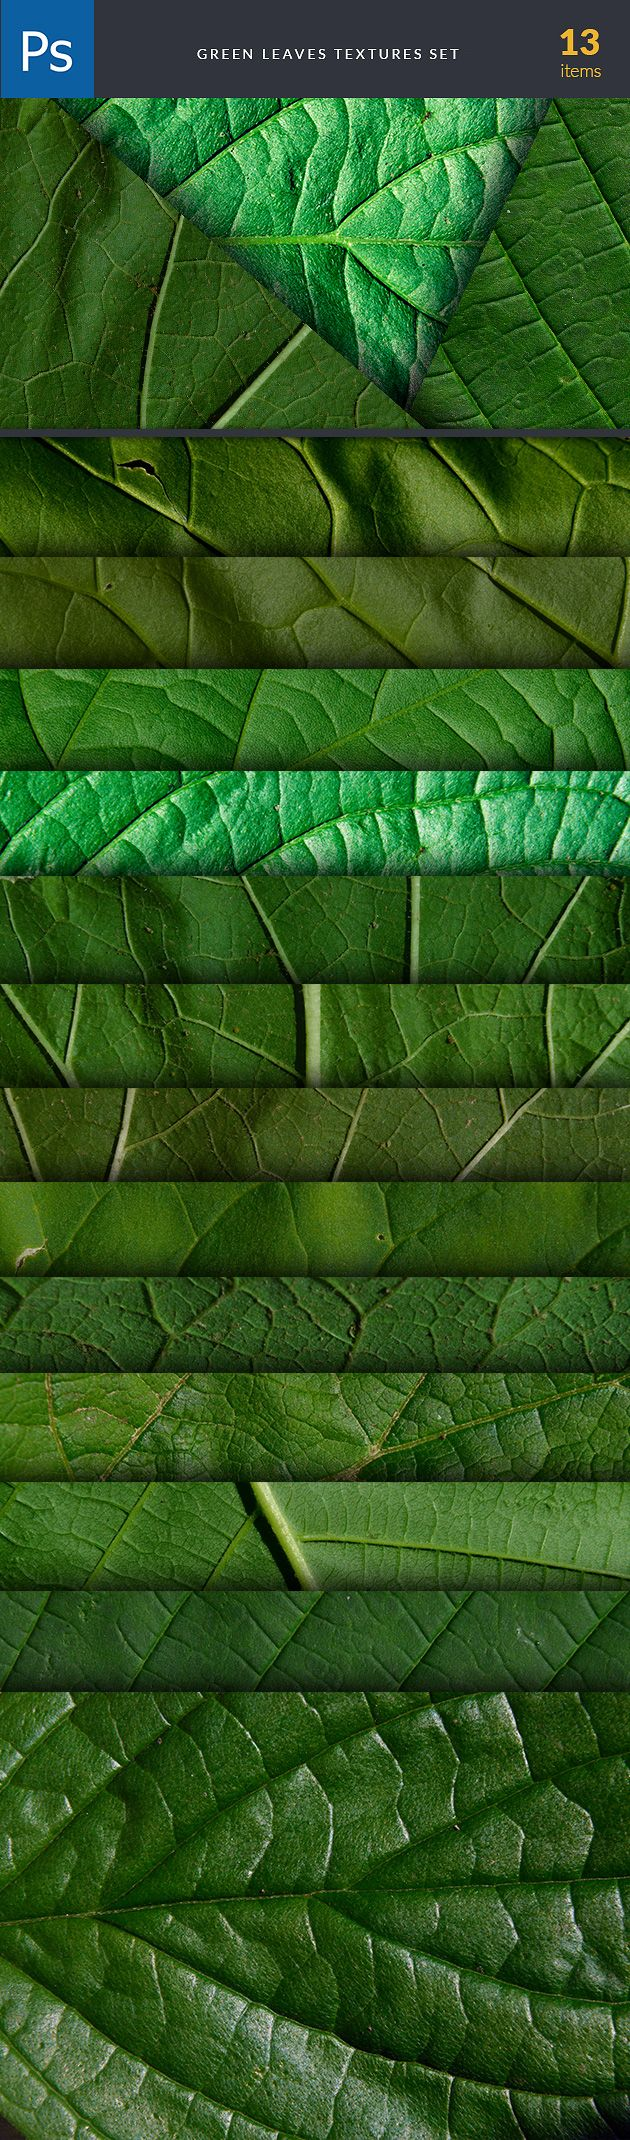 Green Leaves Textures are part of The Ultimate Textures Bundle. Find and buy them here: https://www.inkydeals.com/deal/the-ultimate-textures-bundle-2/